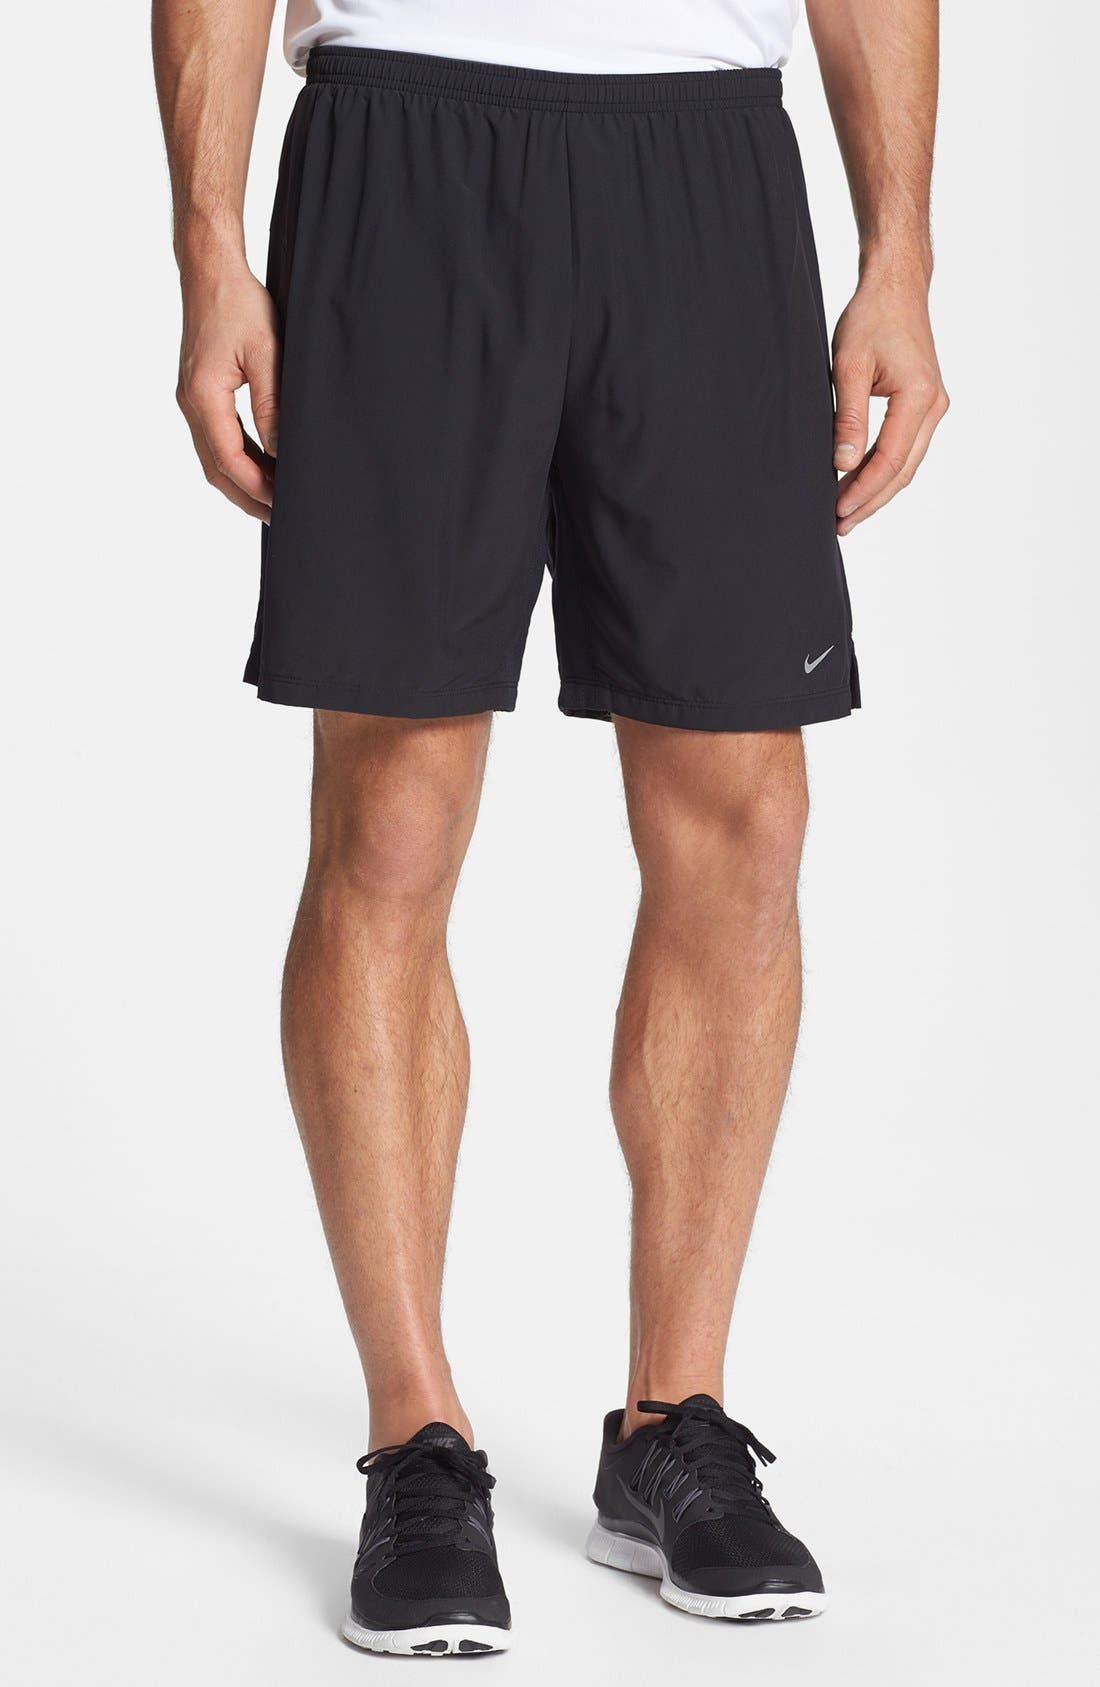 Alternate Image 1 Selected - Nike 'Phenom' 2-in-1 Shorts